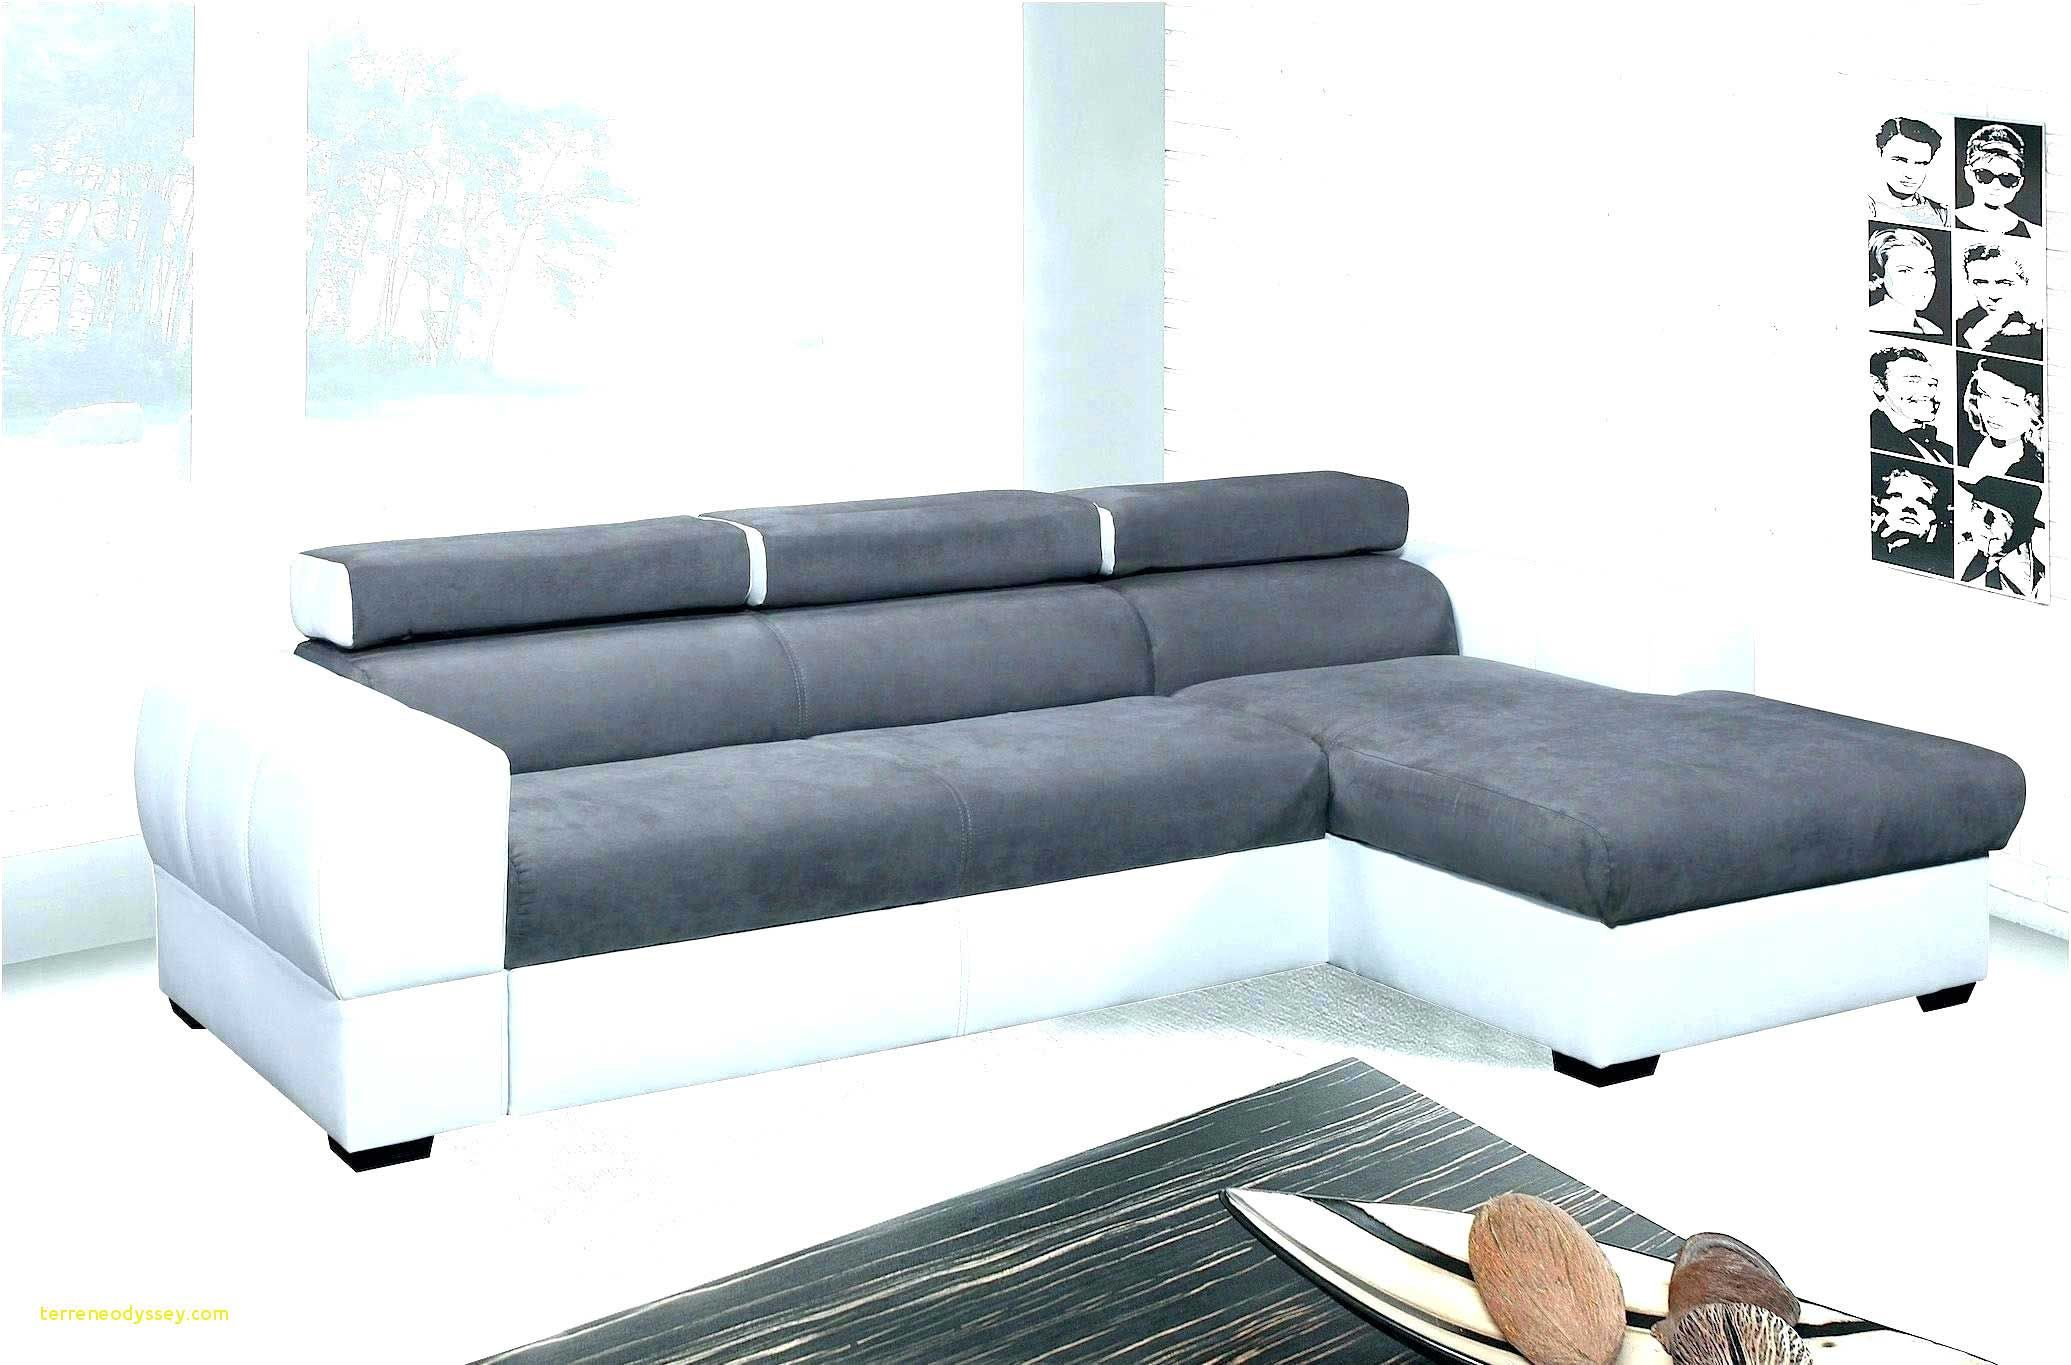 Canape Angle Petit Espace Canape Chesterfield Cuir Canape Cuir 2 Places Meilleurs Choix F1 Of Canape En 2020 Canape Angle